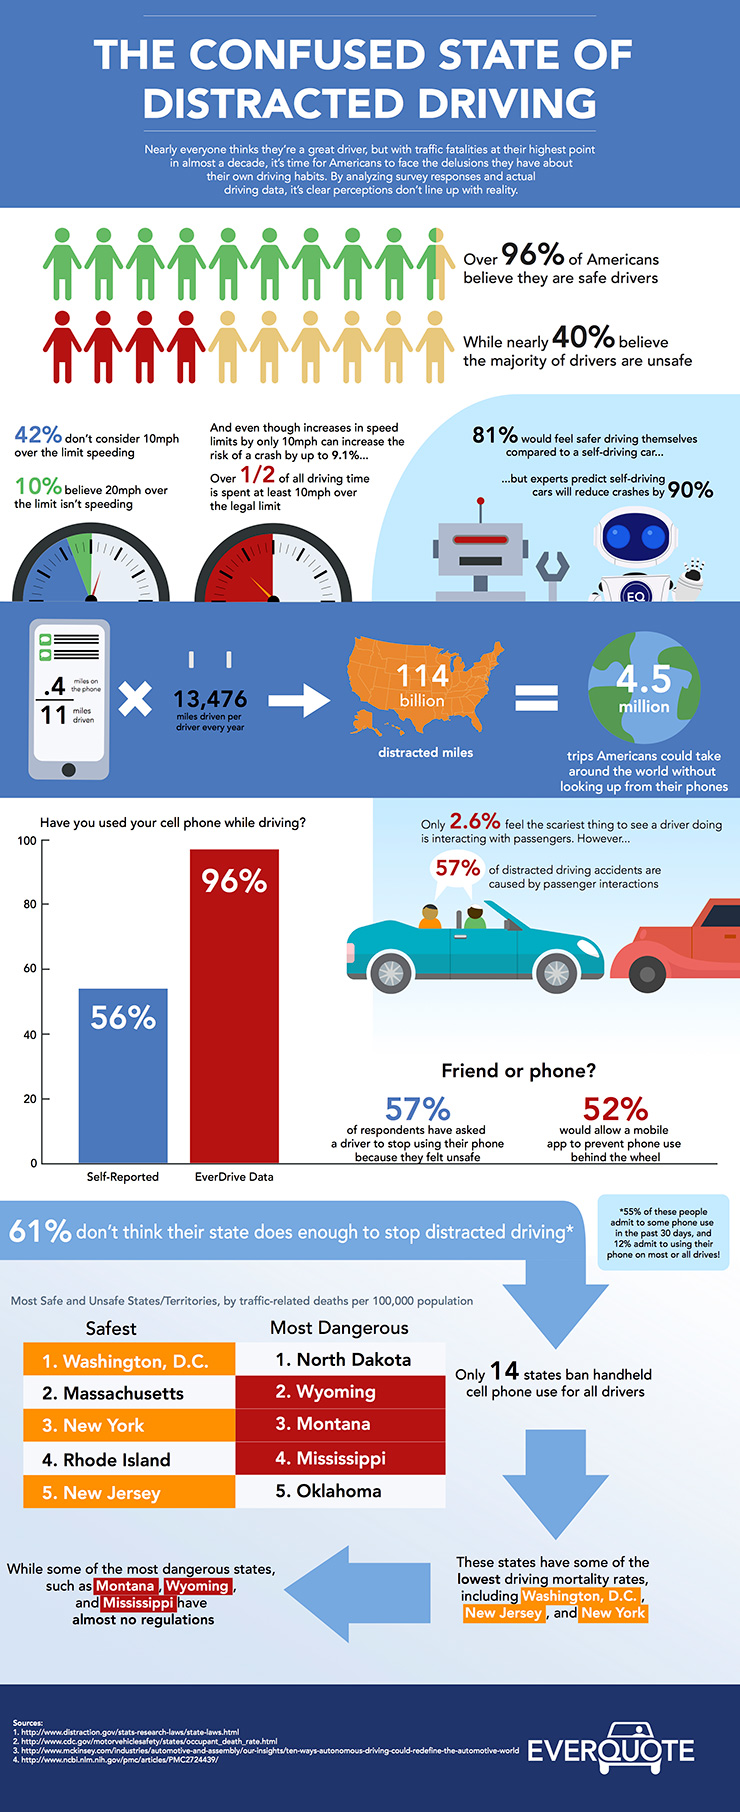 Distracted Driving Infographic - The Confused State of Distracted Driving